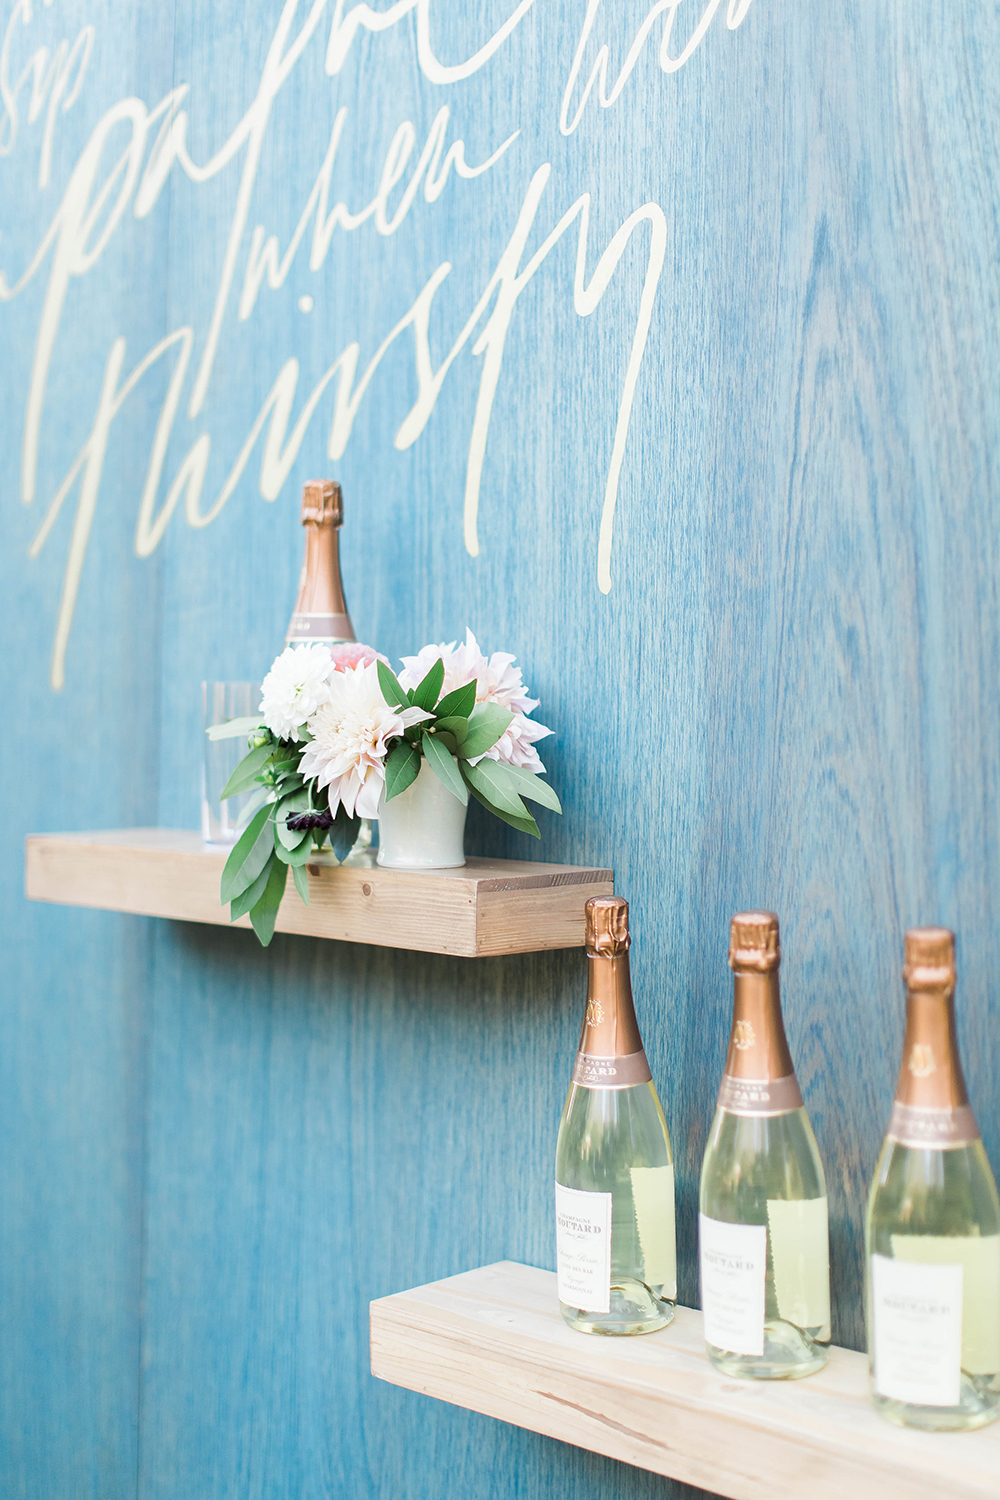 wedding backdrops - photo by Candice Adelle Photography http://ruffledblog.com/historic-garden-wedding-inspiration